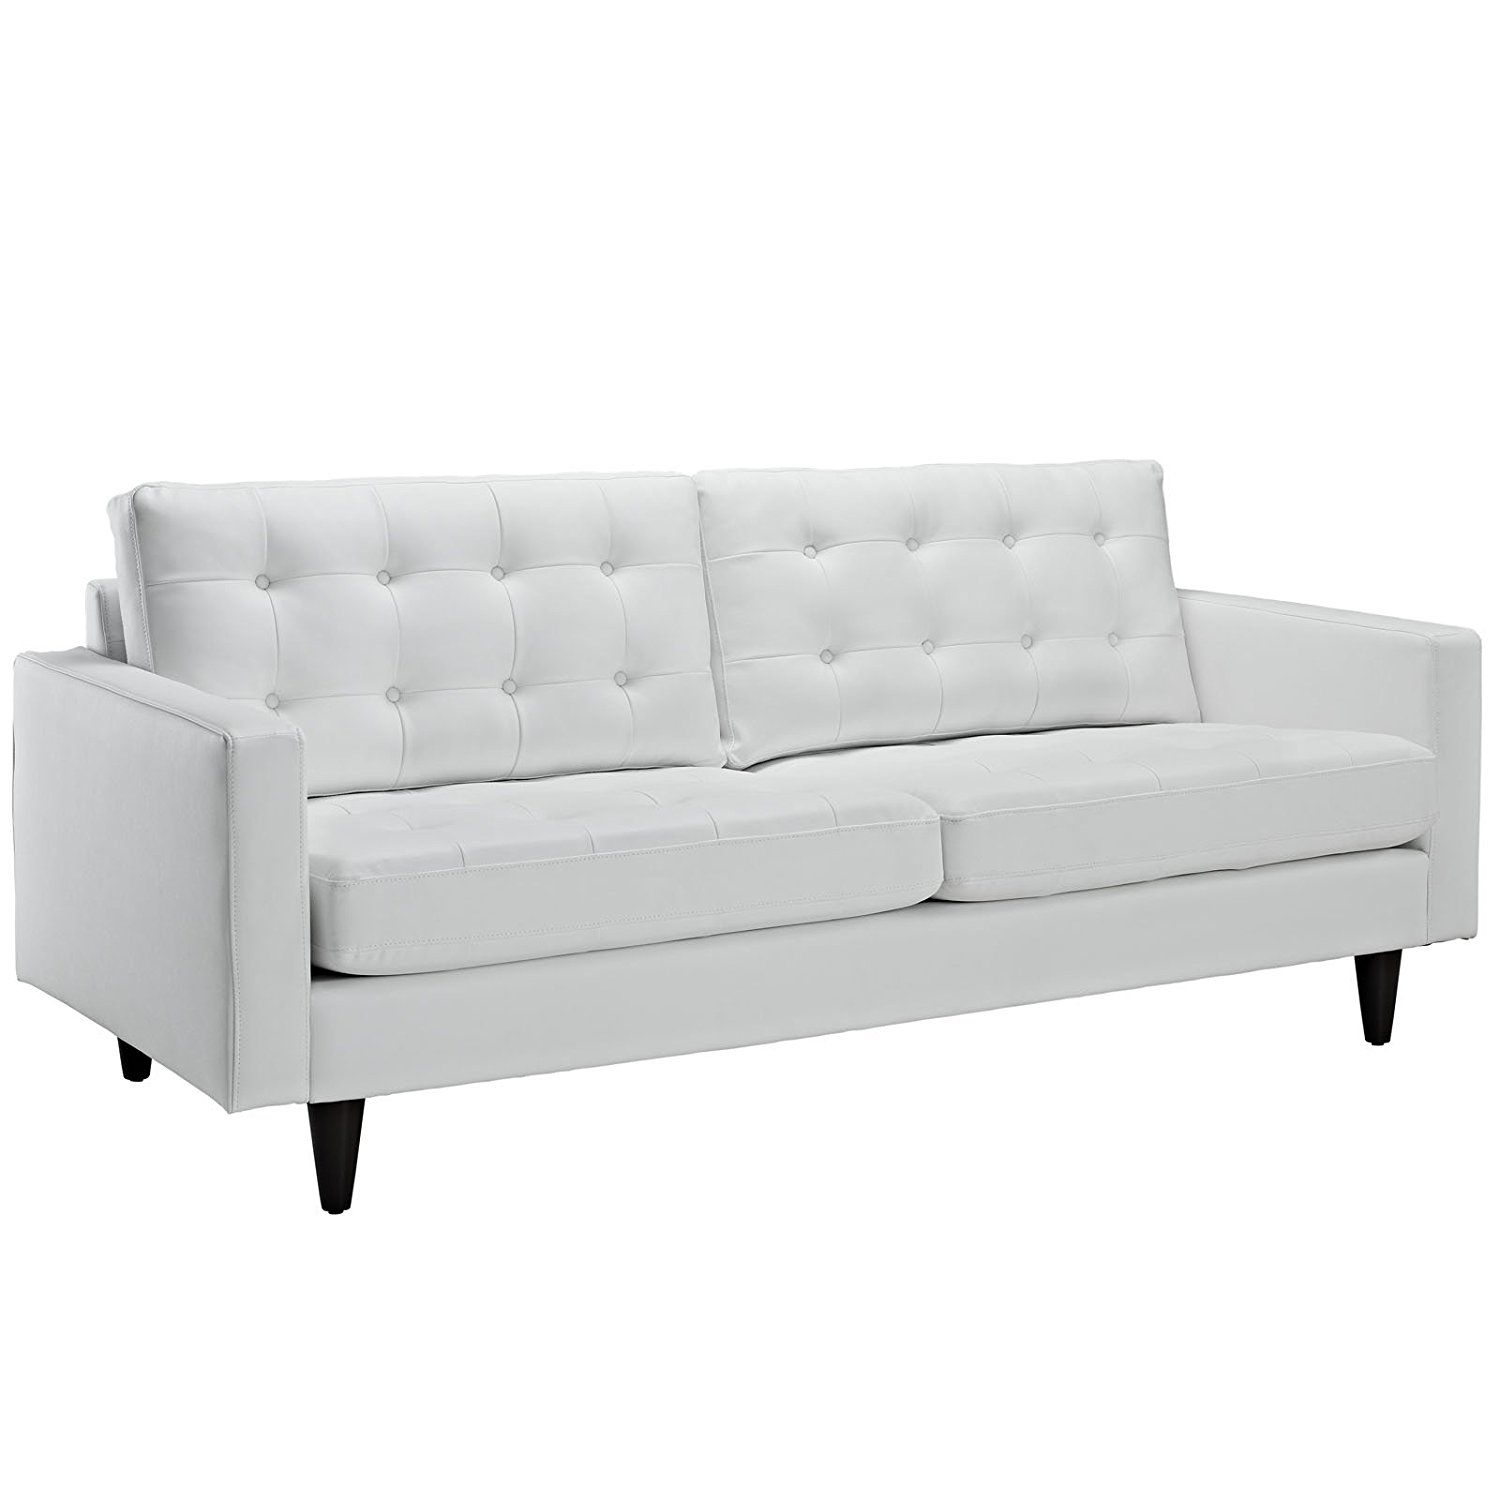 Comfy Sofa, Leather Couches, Bonded Leather, Modern Sofa, Plush, Modern